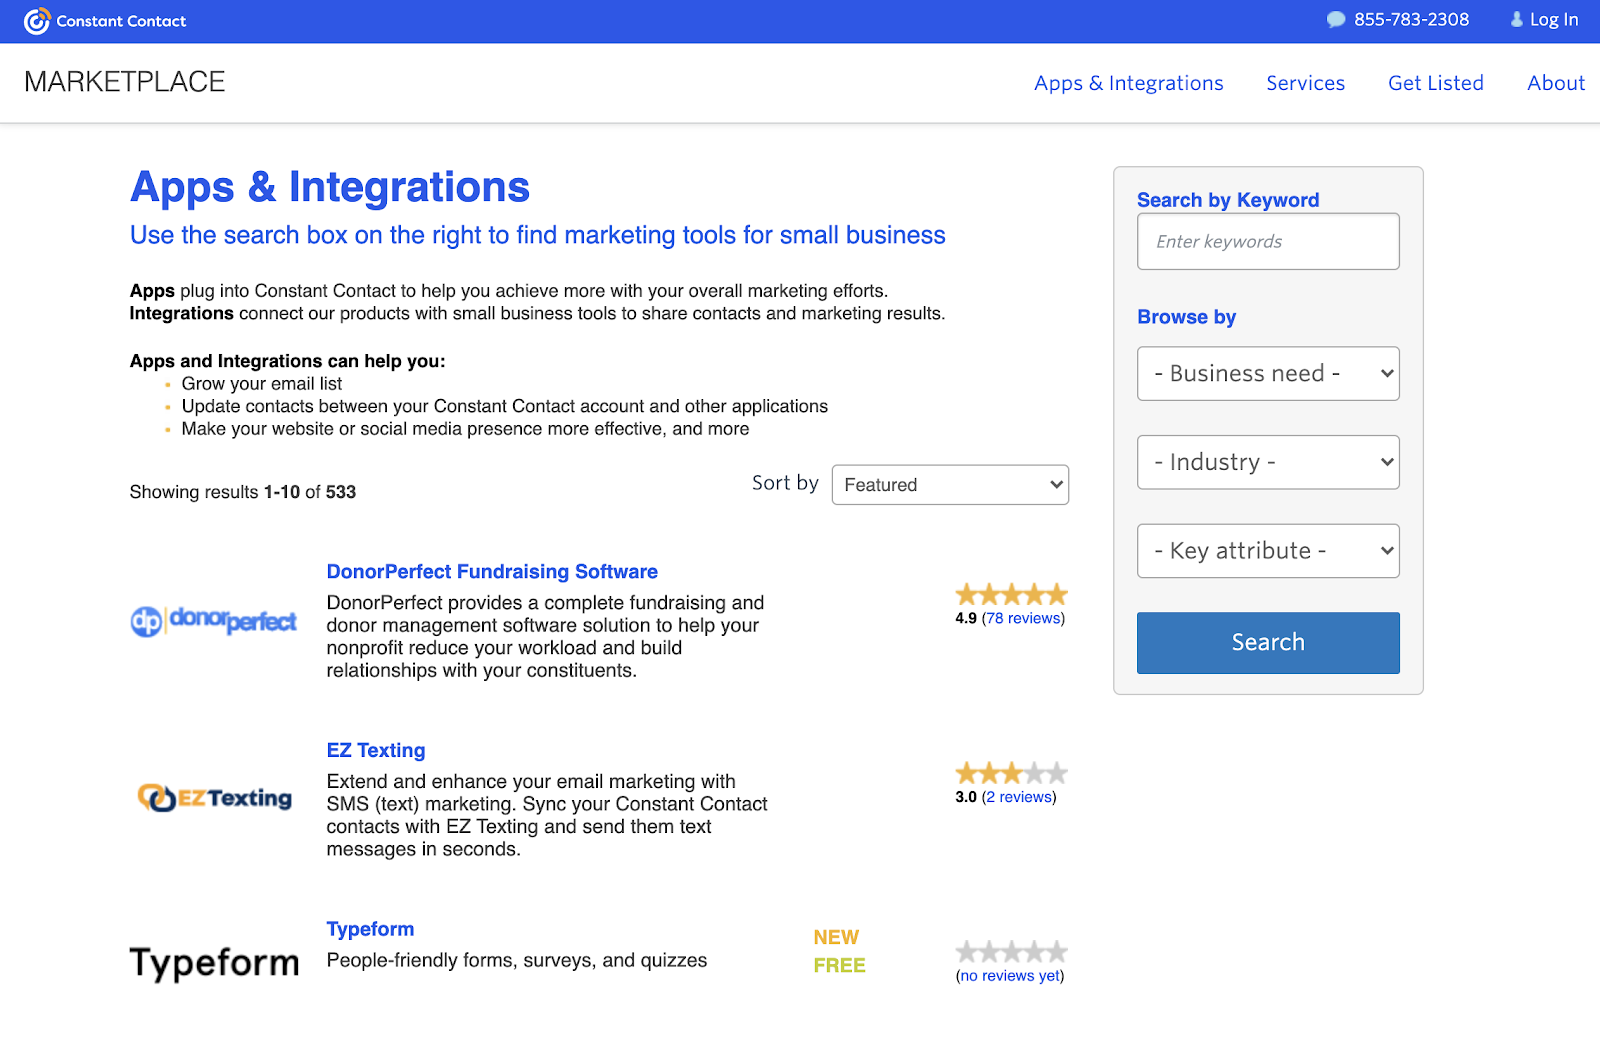 Constant contact apps and integrations page